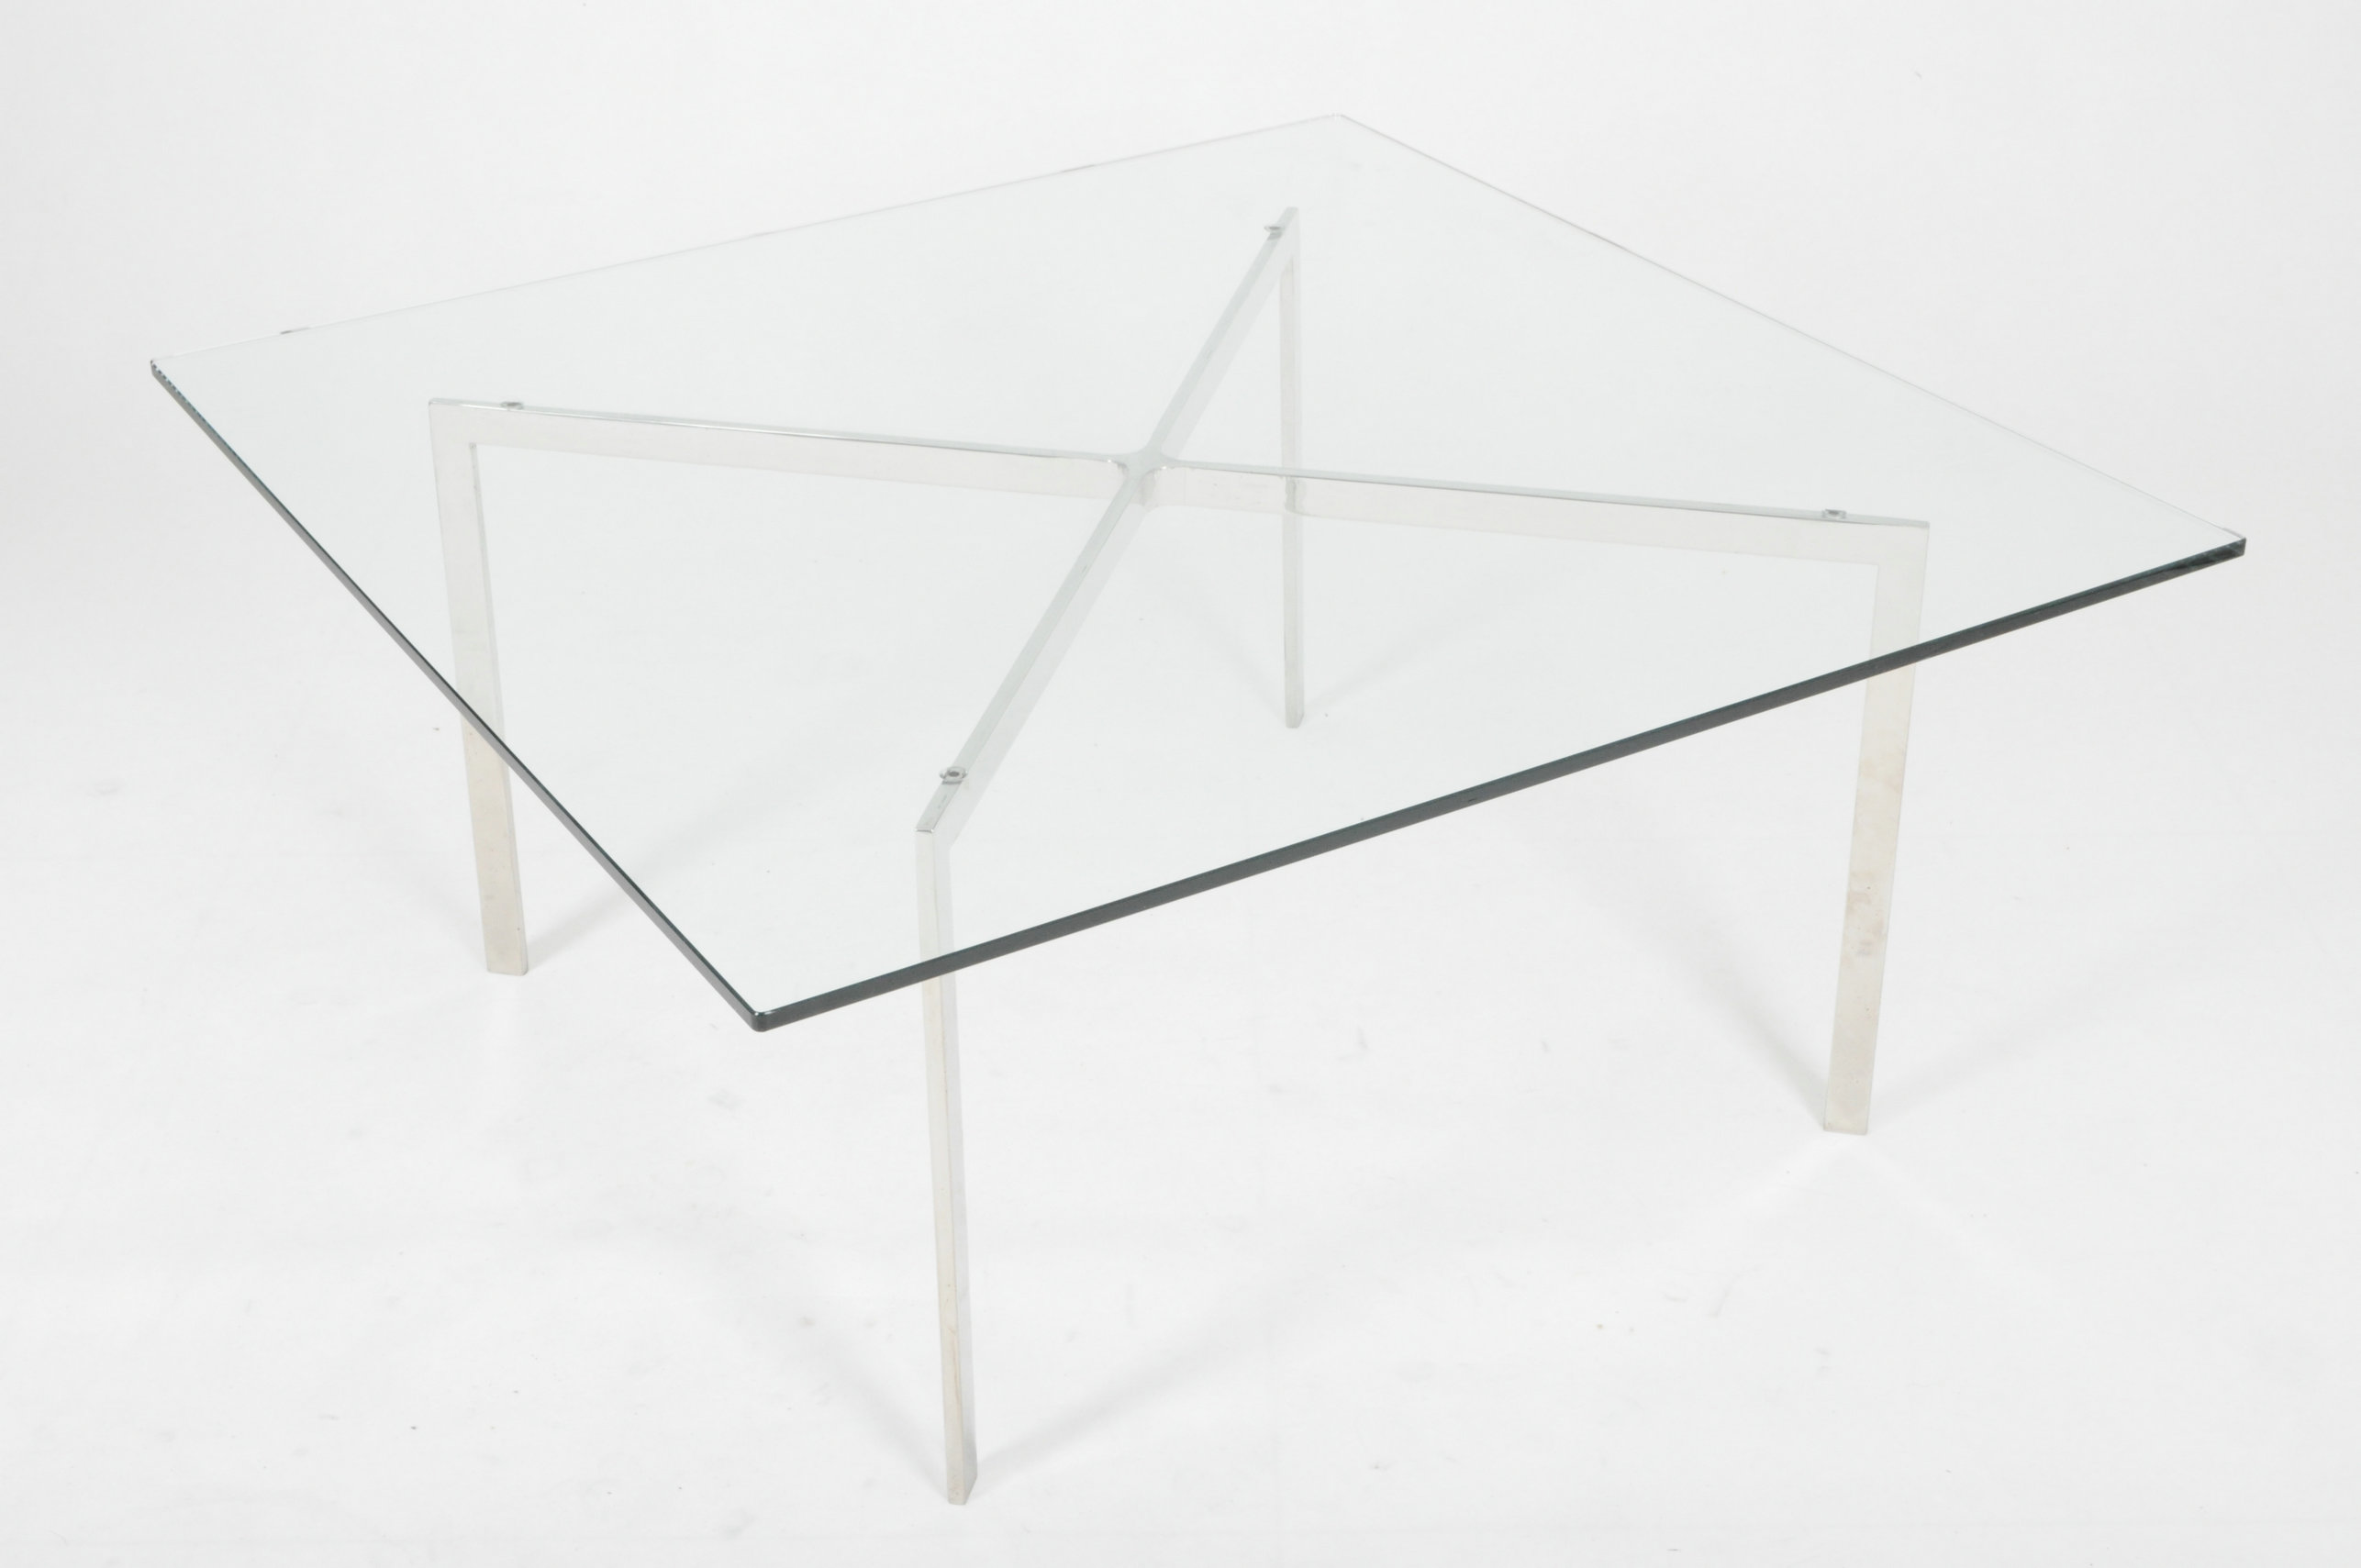 Ludwing Mies van der Rohe coffee table